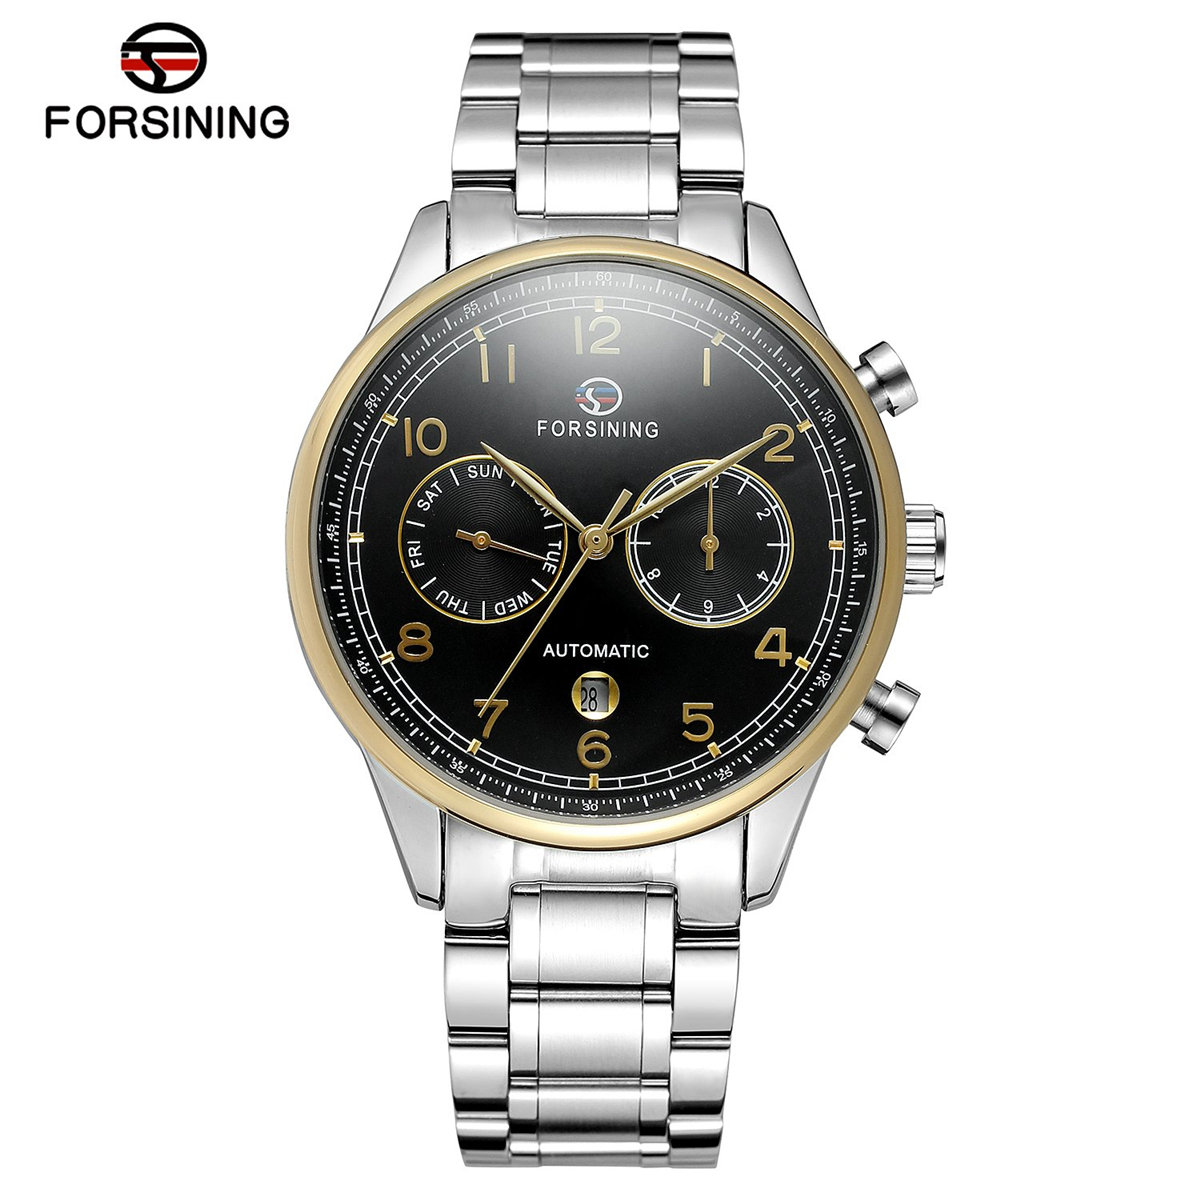 Forsining Mens Watches Top Brand Luxury Automatic Mechanical Watch Men Full Steel Business Sport Watches Relogio Masculino mce top brand mens watches automatic men watch luxury stainless steel wristwatches male clock montre with box 335